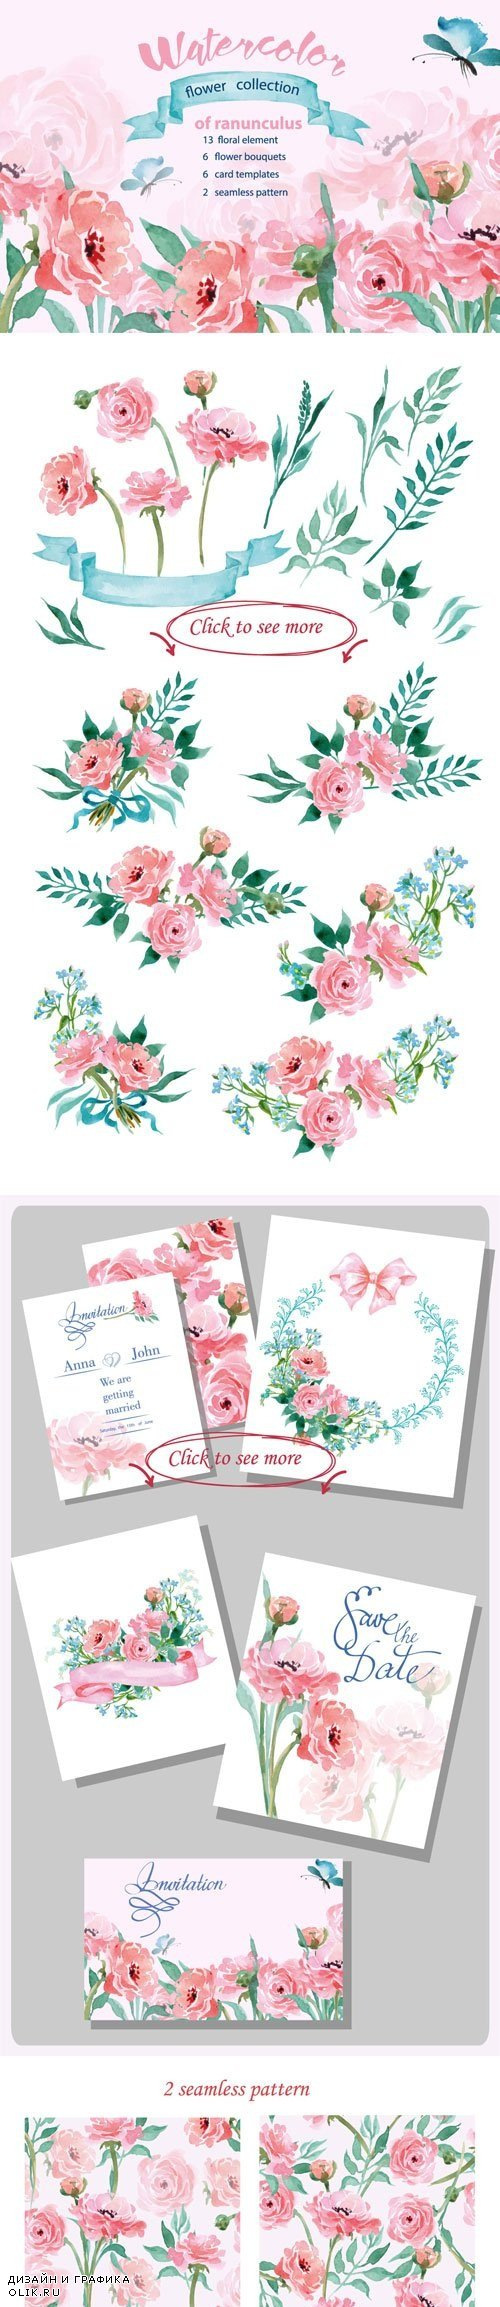 EM 468576 Watercolor flower collection of ranu